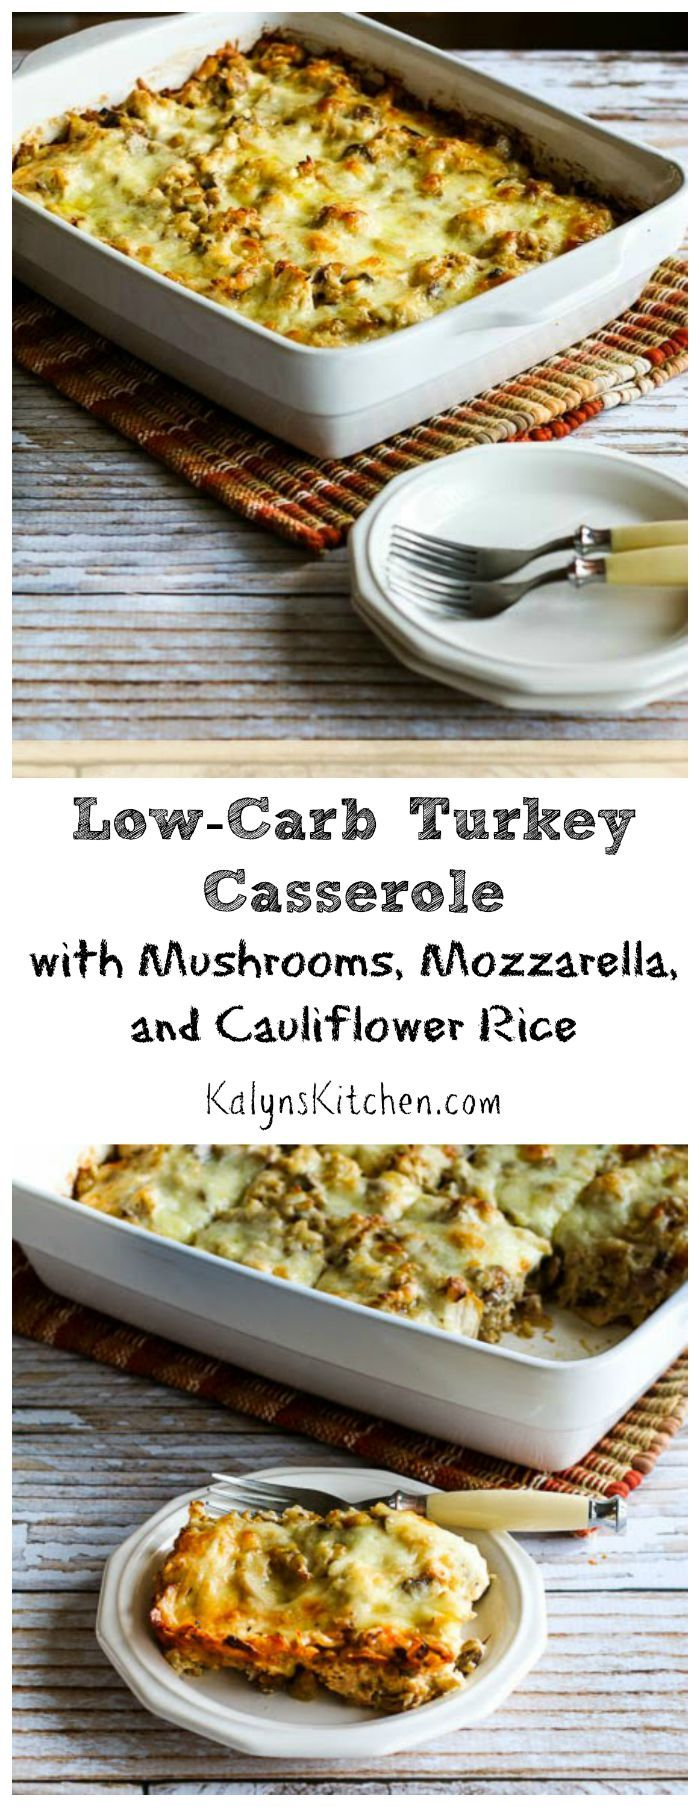 Low-Carb Turkey Casserole with Mushrooms, Mozzarella, and Cauliflower Rice